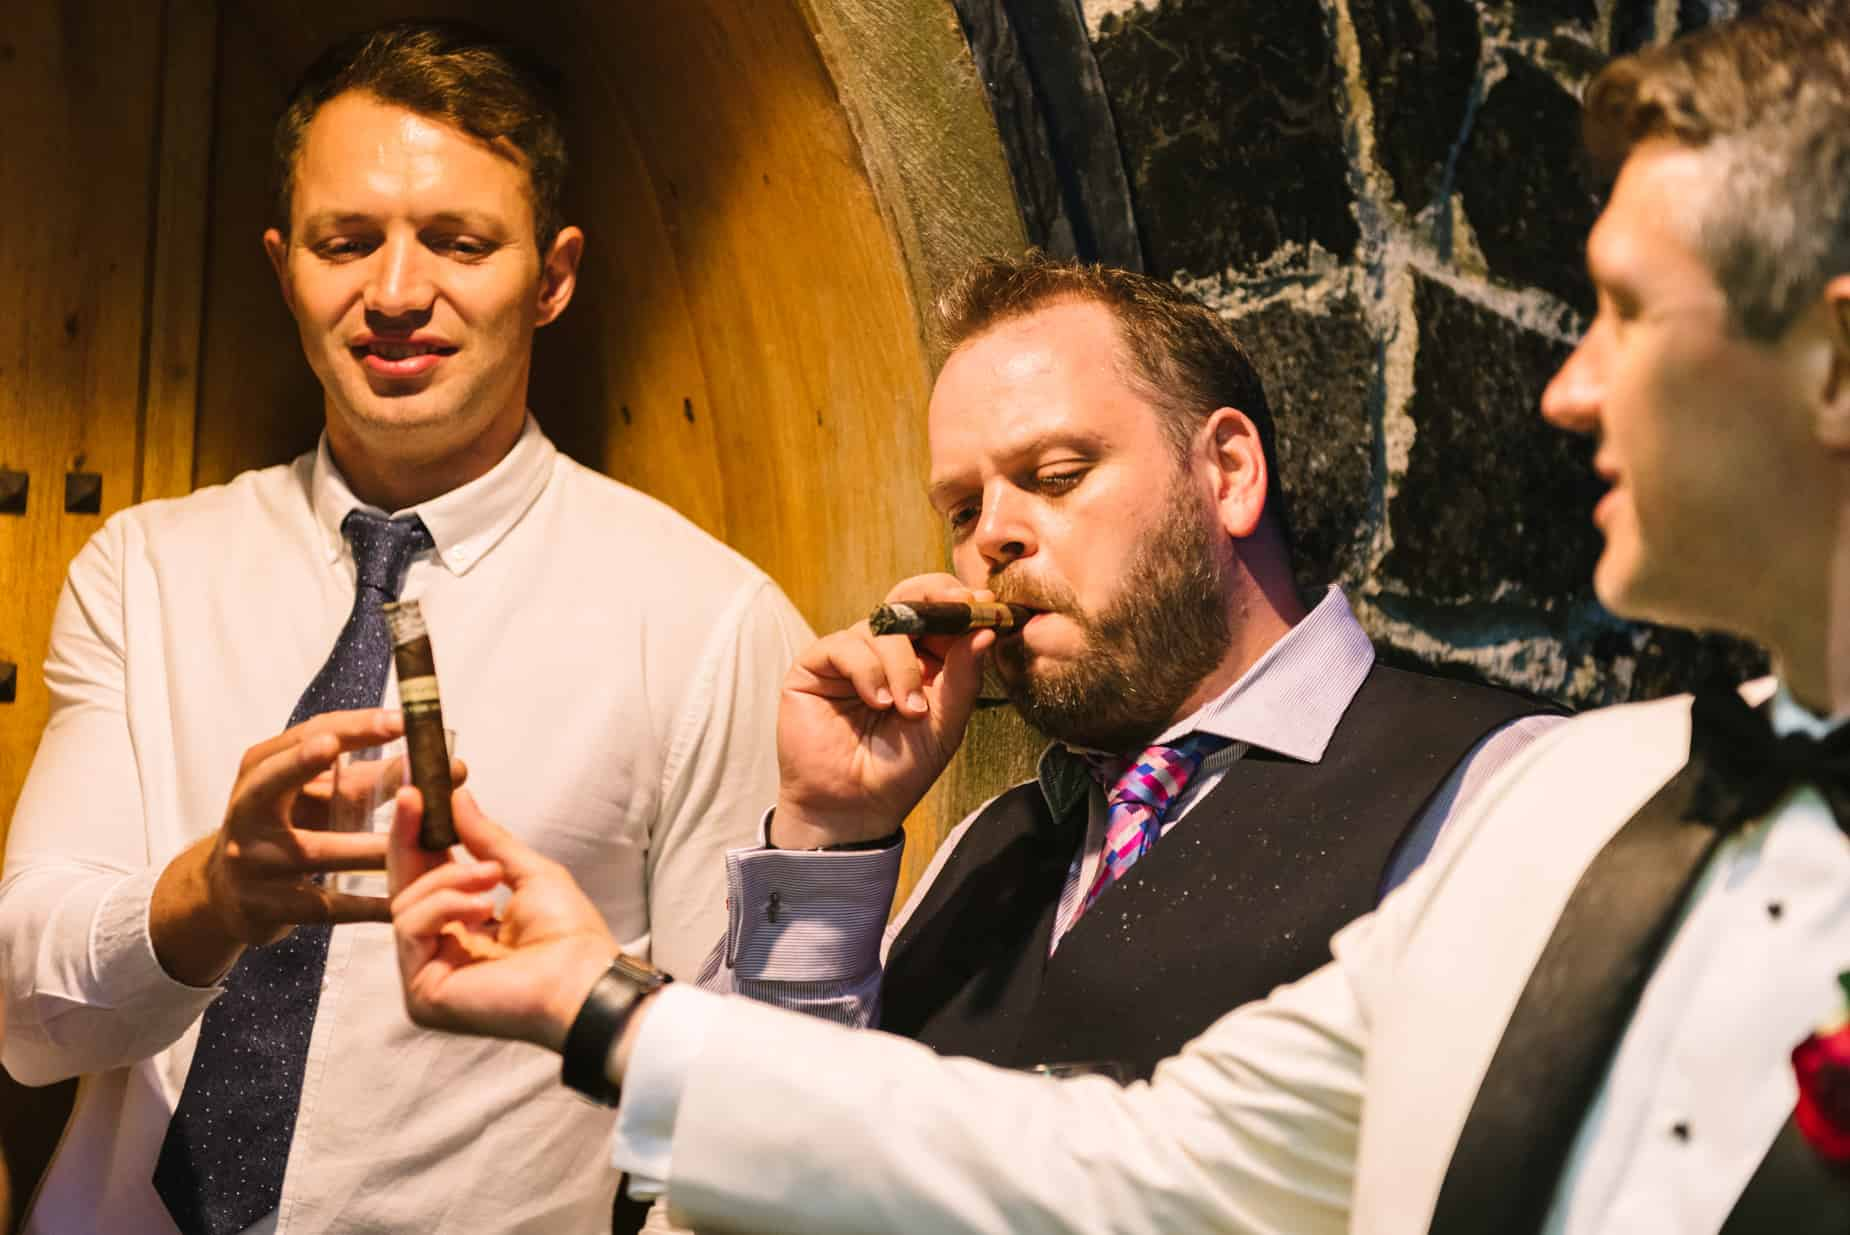 male guests enjoying wedding cigars